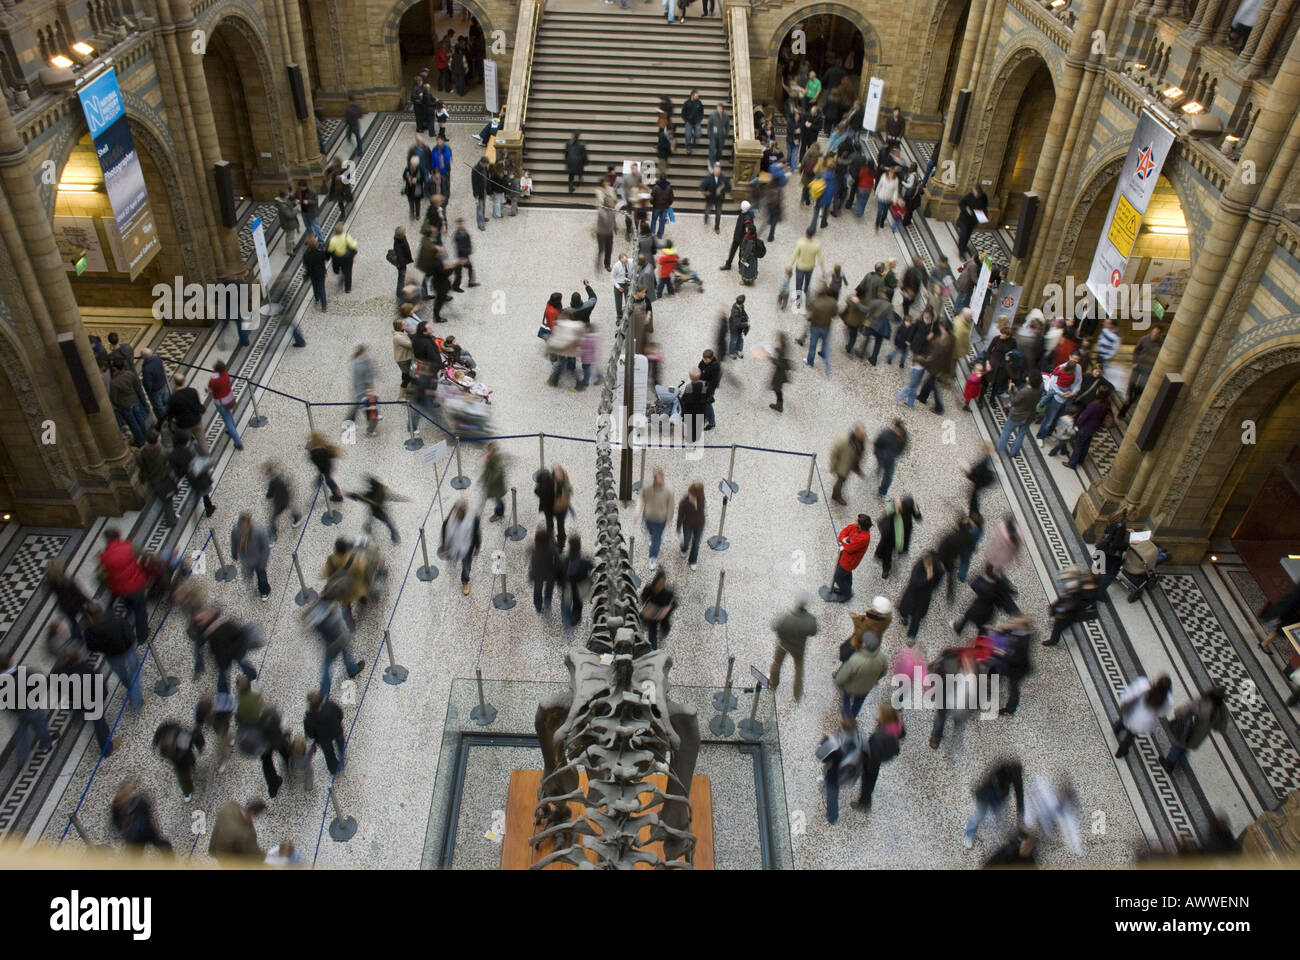 A view of the ground floor area of the Natural History Museum in South Kensington, London, UK. - Stock Image